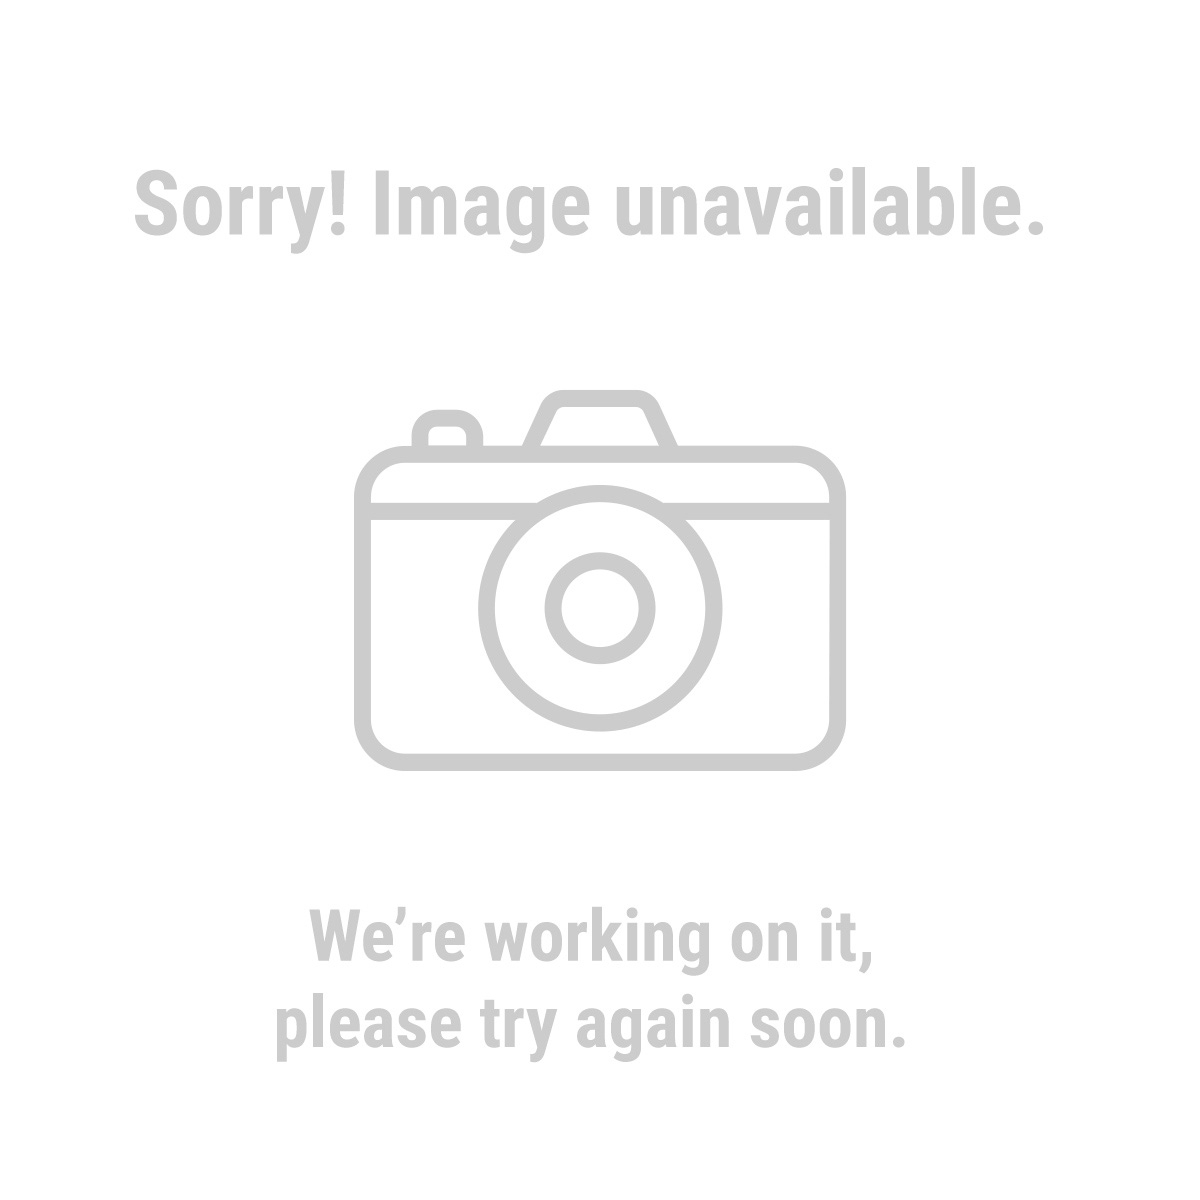 Greenwood 63036 4 gal. Backpack Sprayer